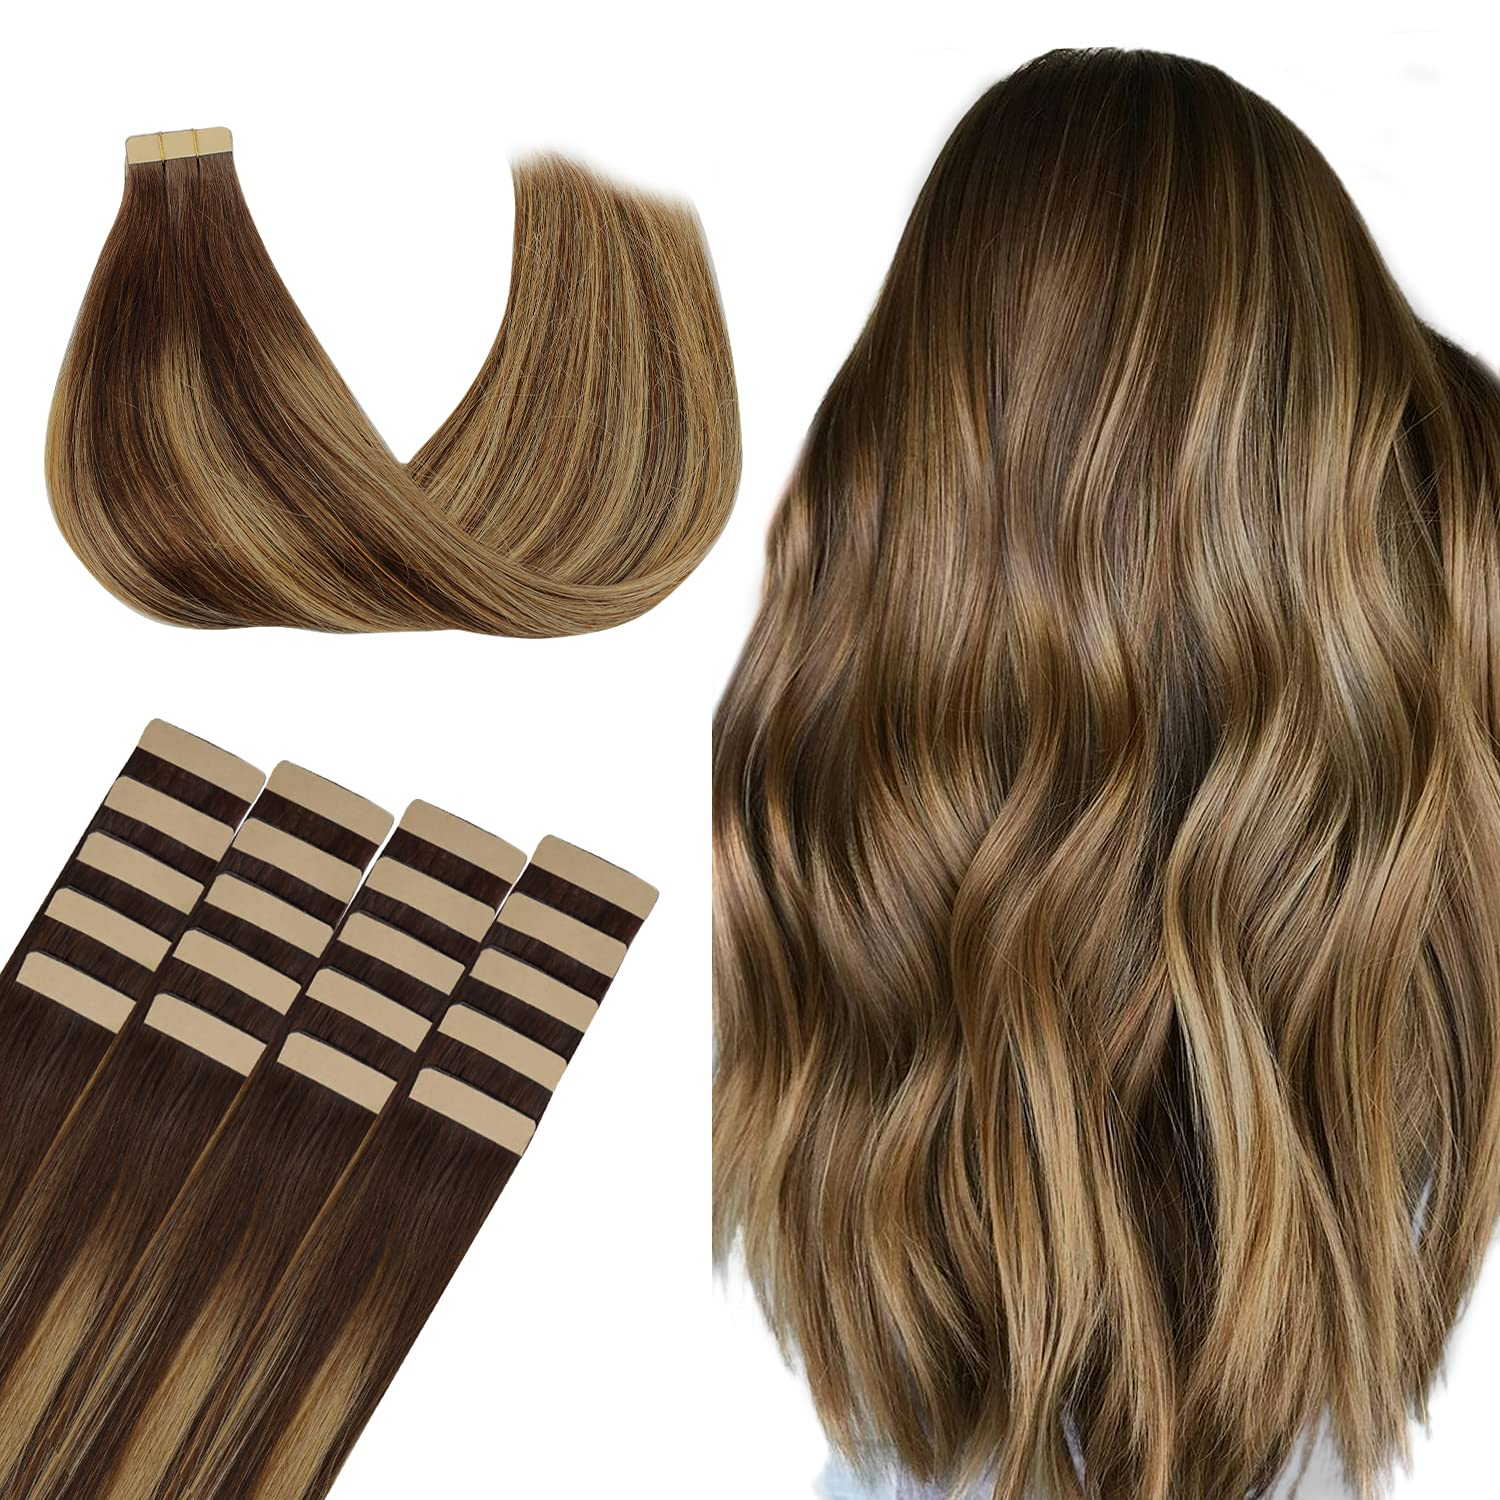 WENNALIFE Direct sale of manufacturer Tape in Human Hair Chocolate Bro Extensions 50g Dedication 20pcs